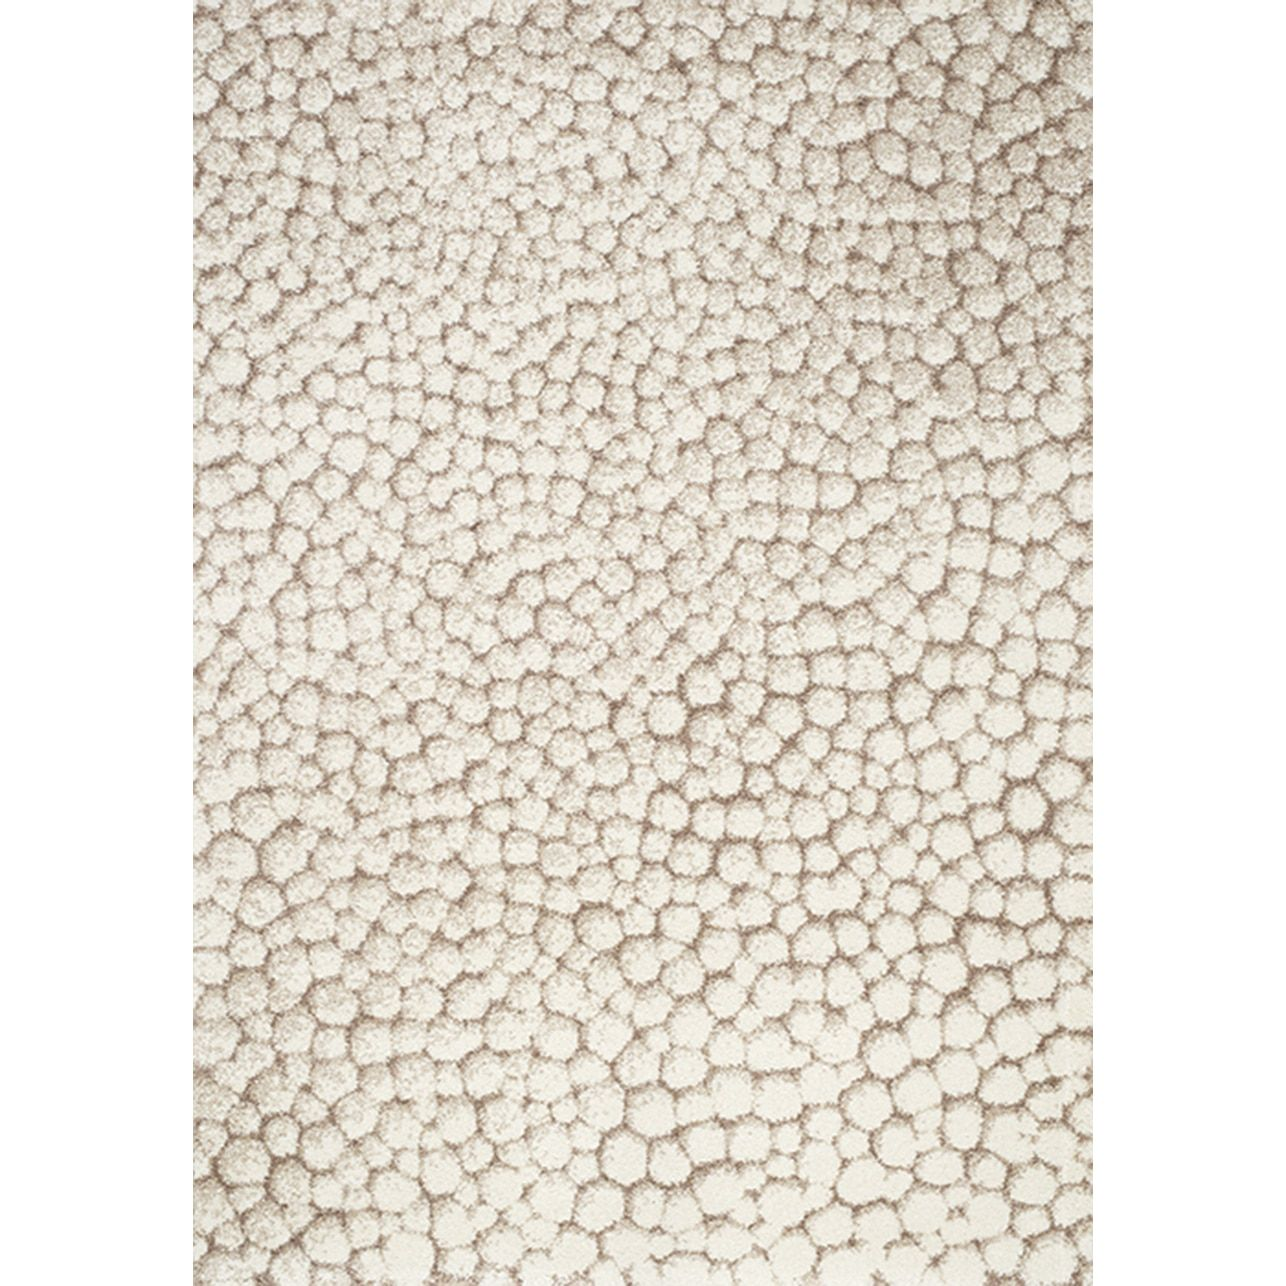 Results for Pebble Rug - Free Shipping on orders over $45 at Overstock.com.